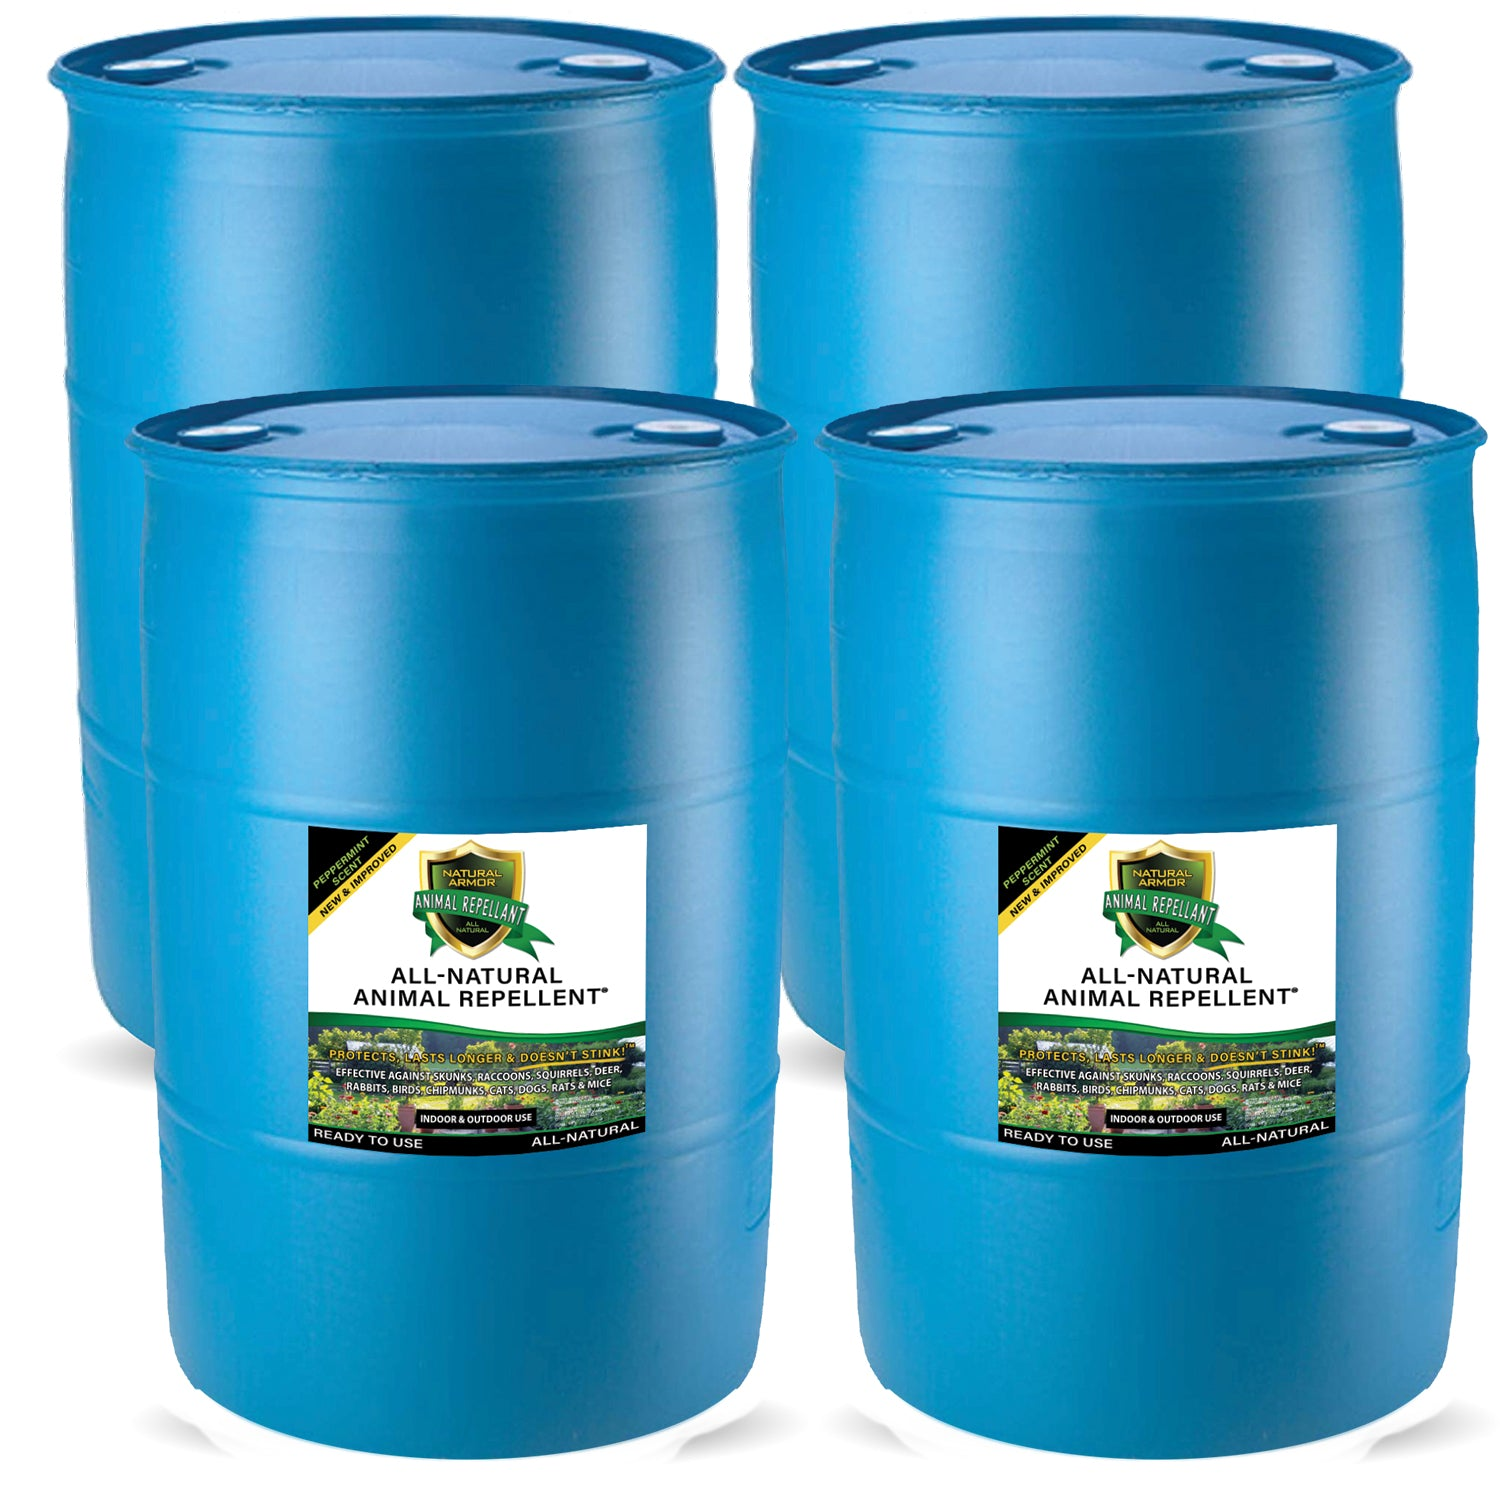 Animal Repellent –– Peppermint Scent (4) 55 GALLON DRUMS